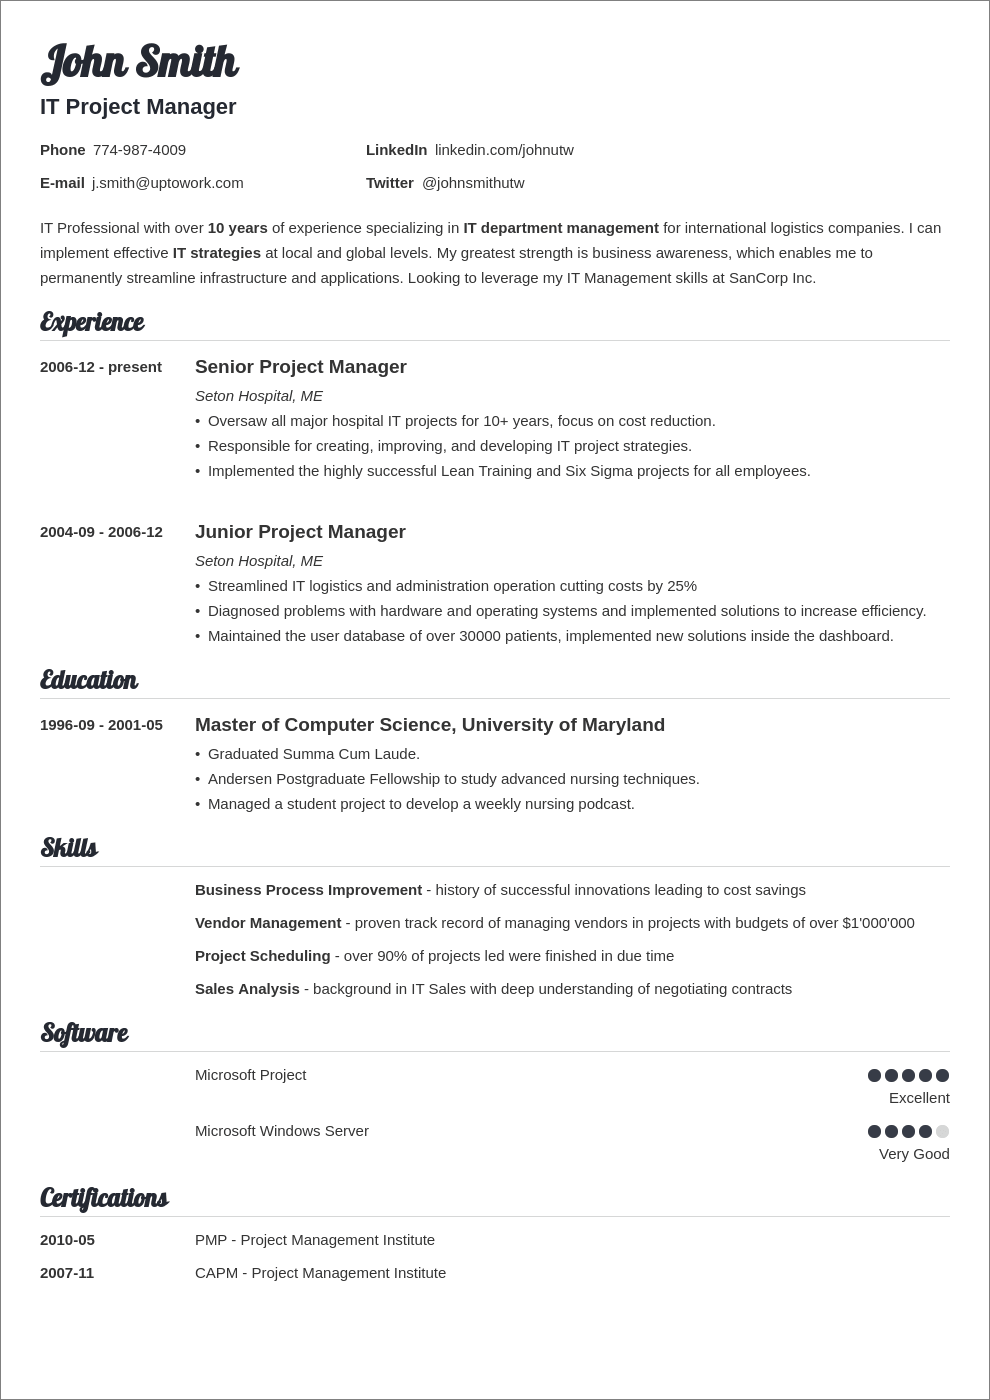 A Professional Resume Template For A General Manager And Business Analyst Want It Download I Business Analyst Resume Business Resume Business Resume Template